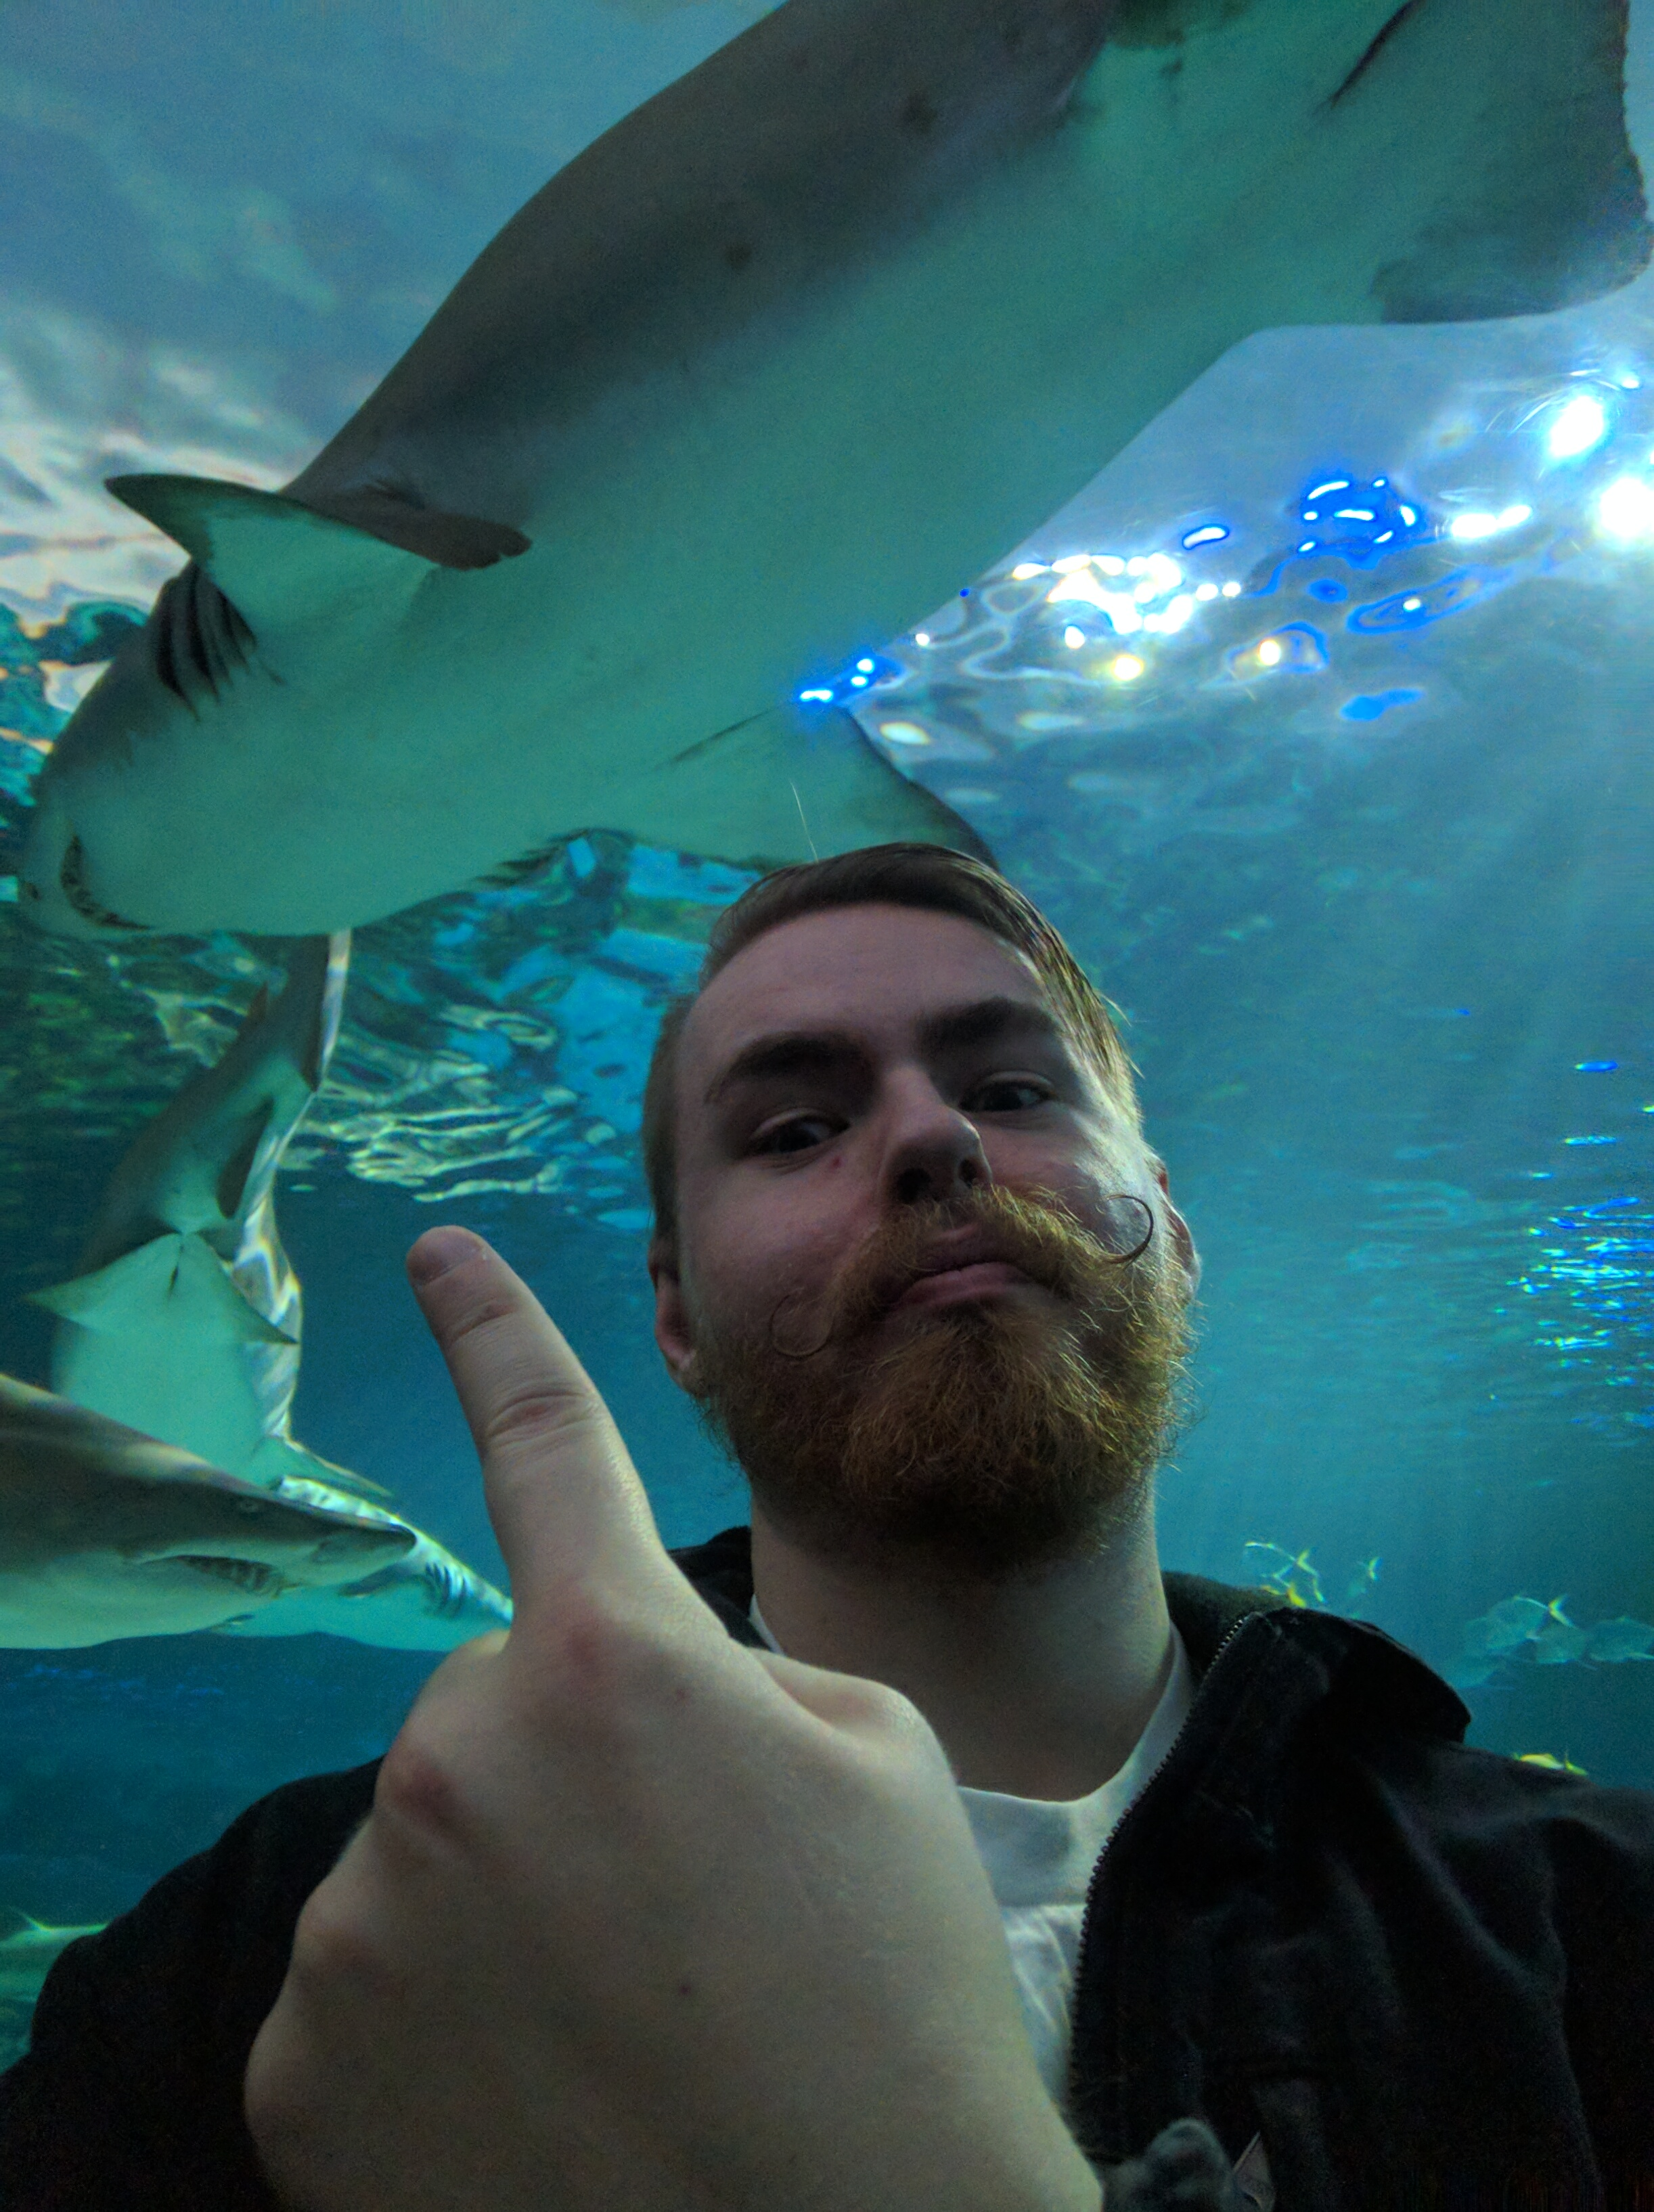 Here's a picture of me underneath some sharks.